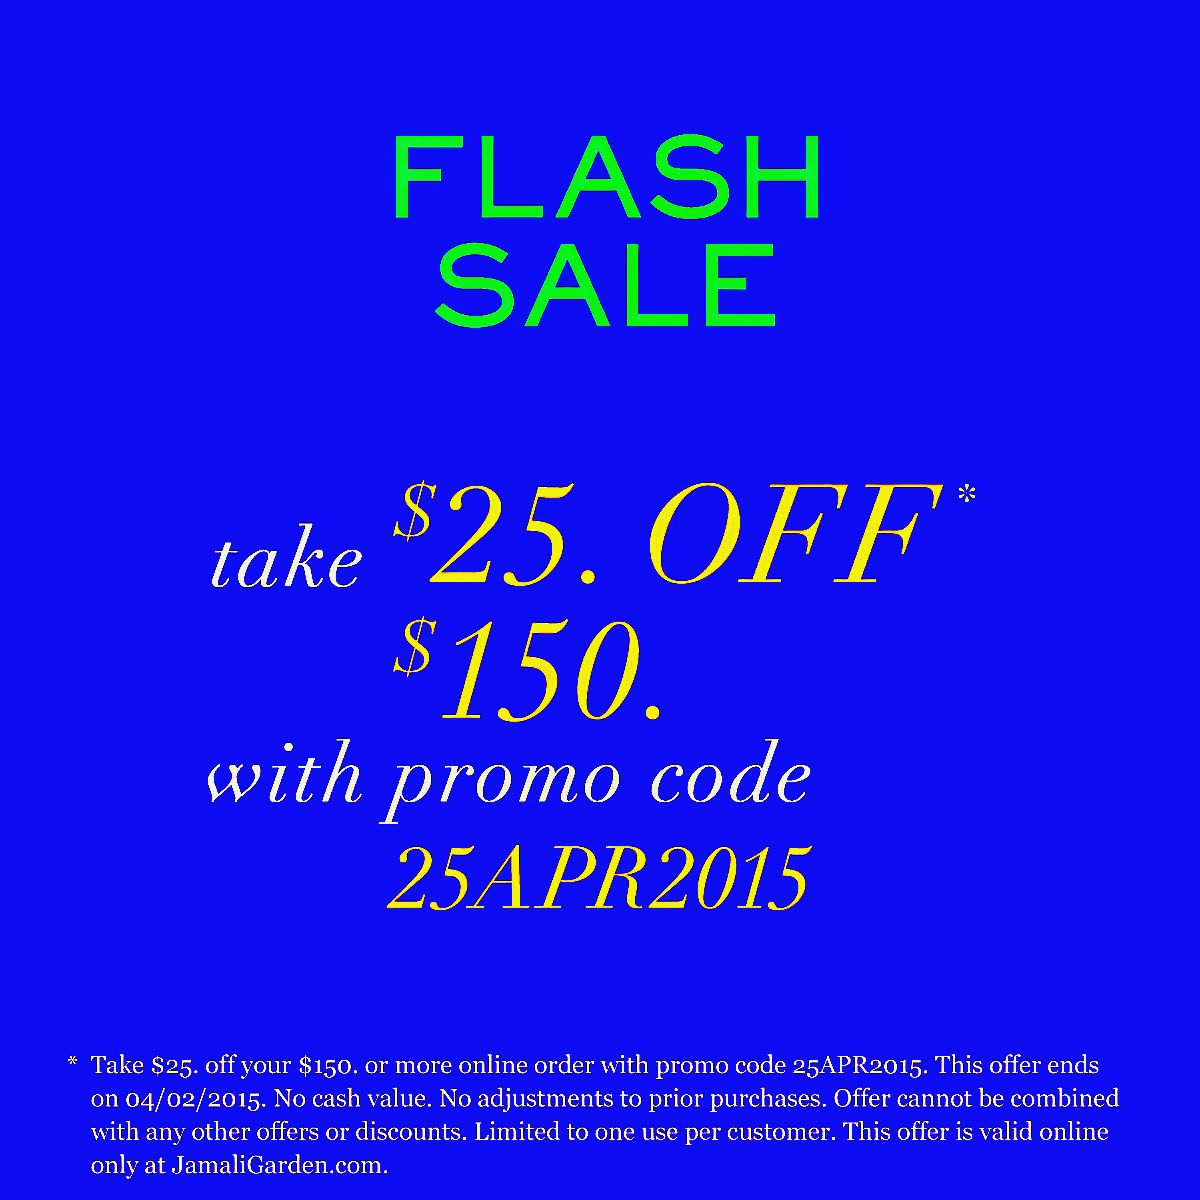 FLASH SALE: Take $25. OFF* Your Online Order With Promo